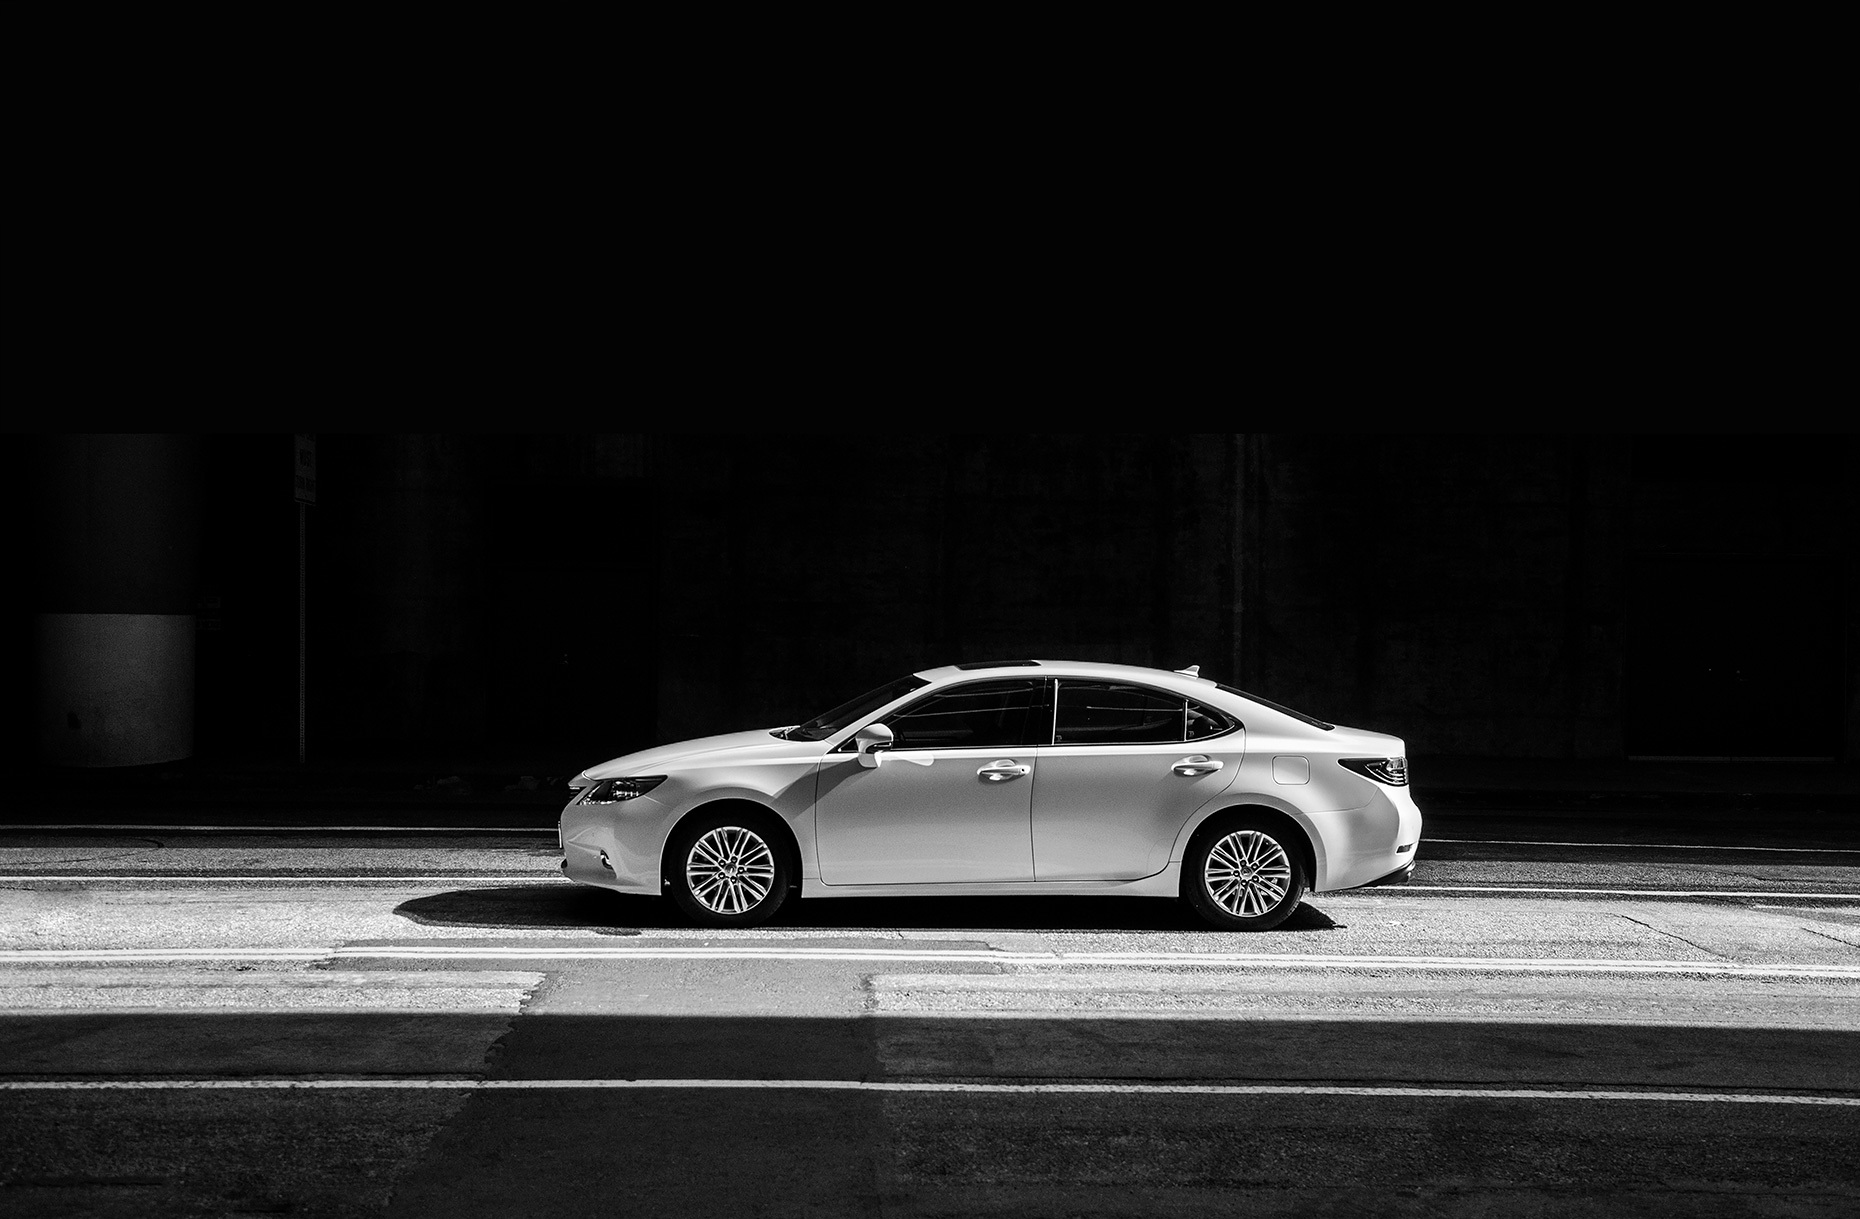 Christopher Nelson Photography|Lexus|White|Grand Avenue|DTLA